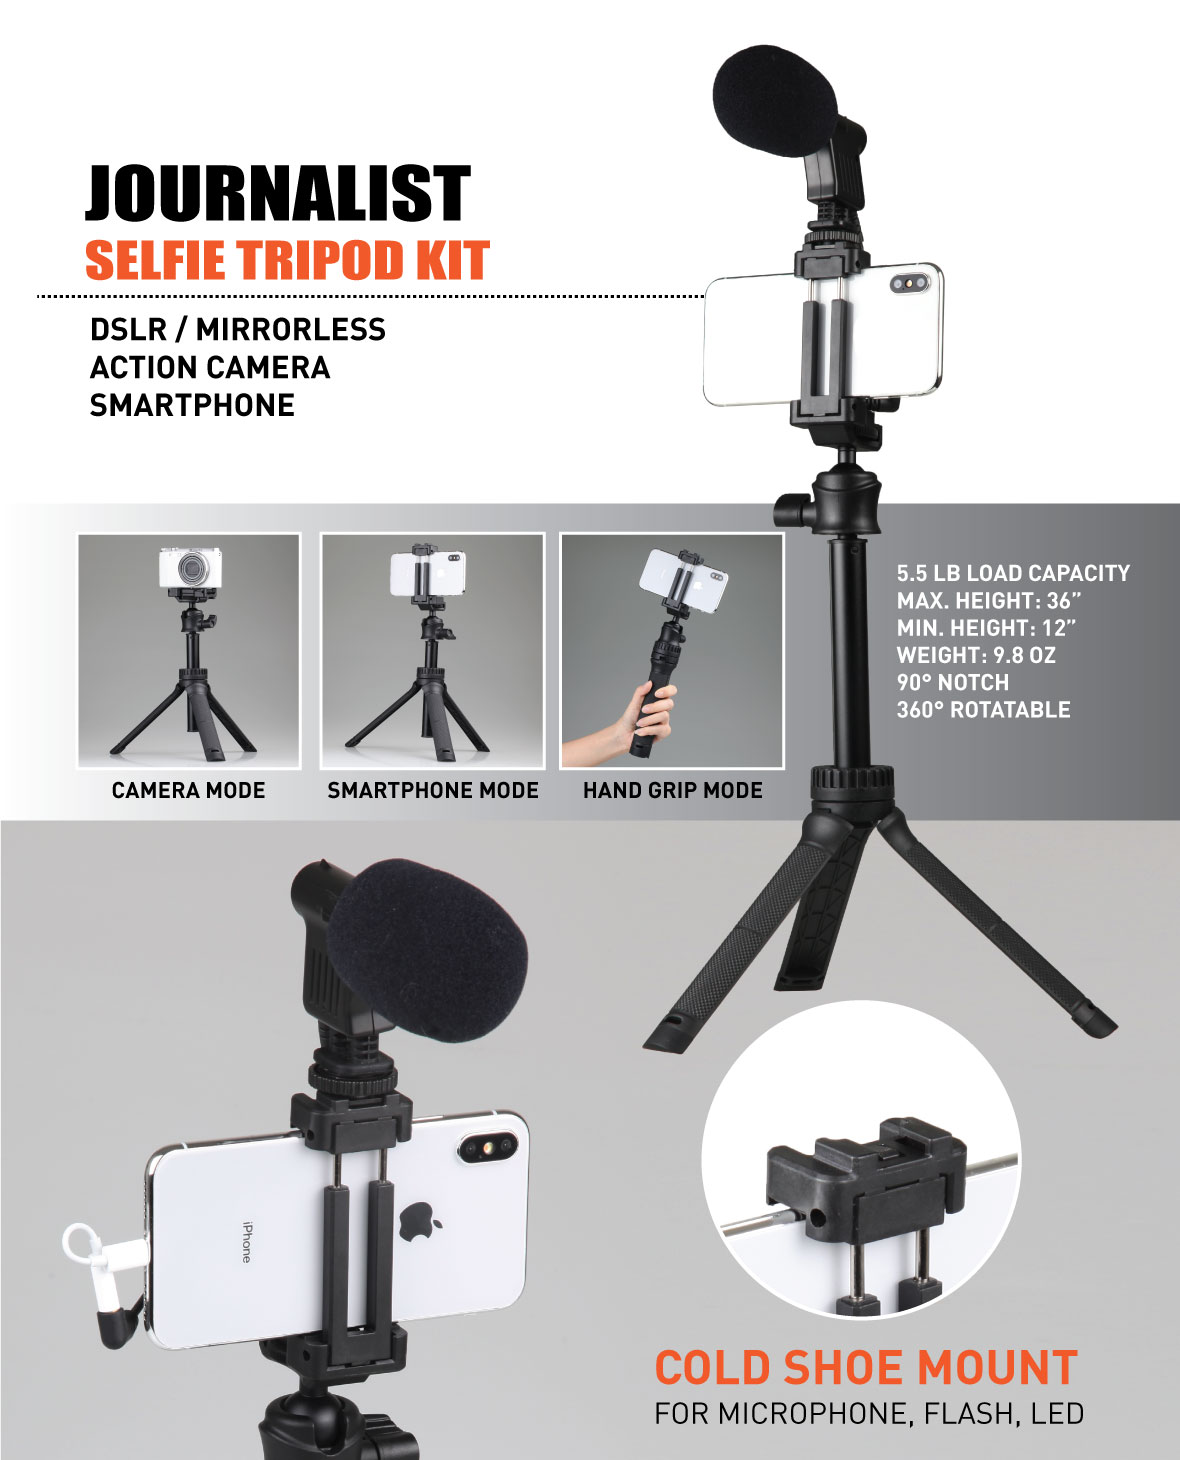 Ztylus Journalist Selfie Tripod Smartphone Stabilizer Rig, Hand Grip, Table Tripod, Rotatable Ball Head, Adjustable Leg, for DSLR Mirrorless Camera, Smartphone, Action Camera